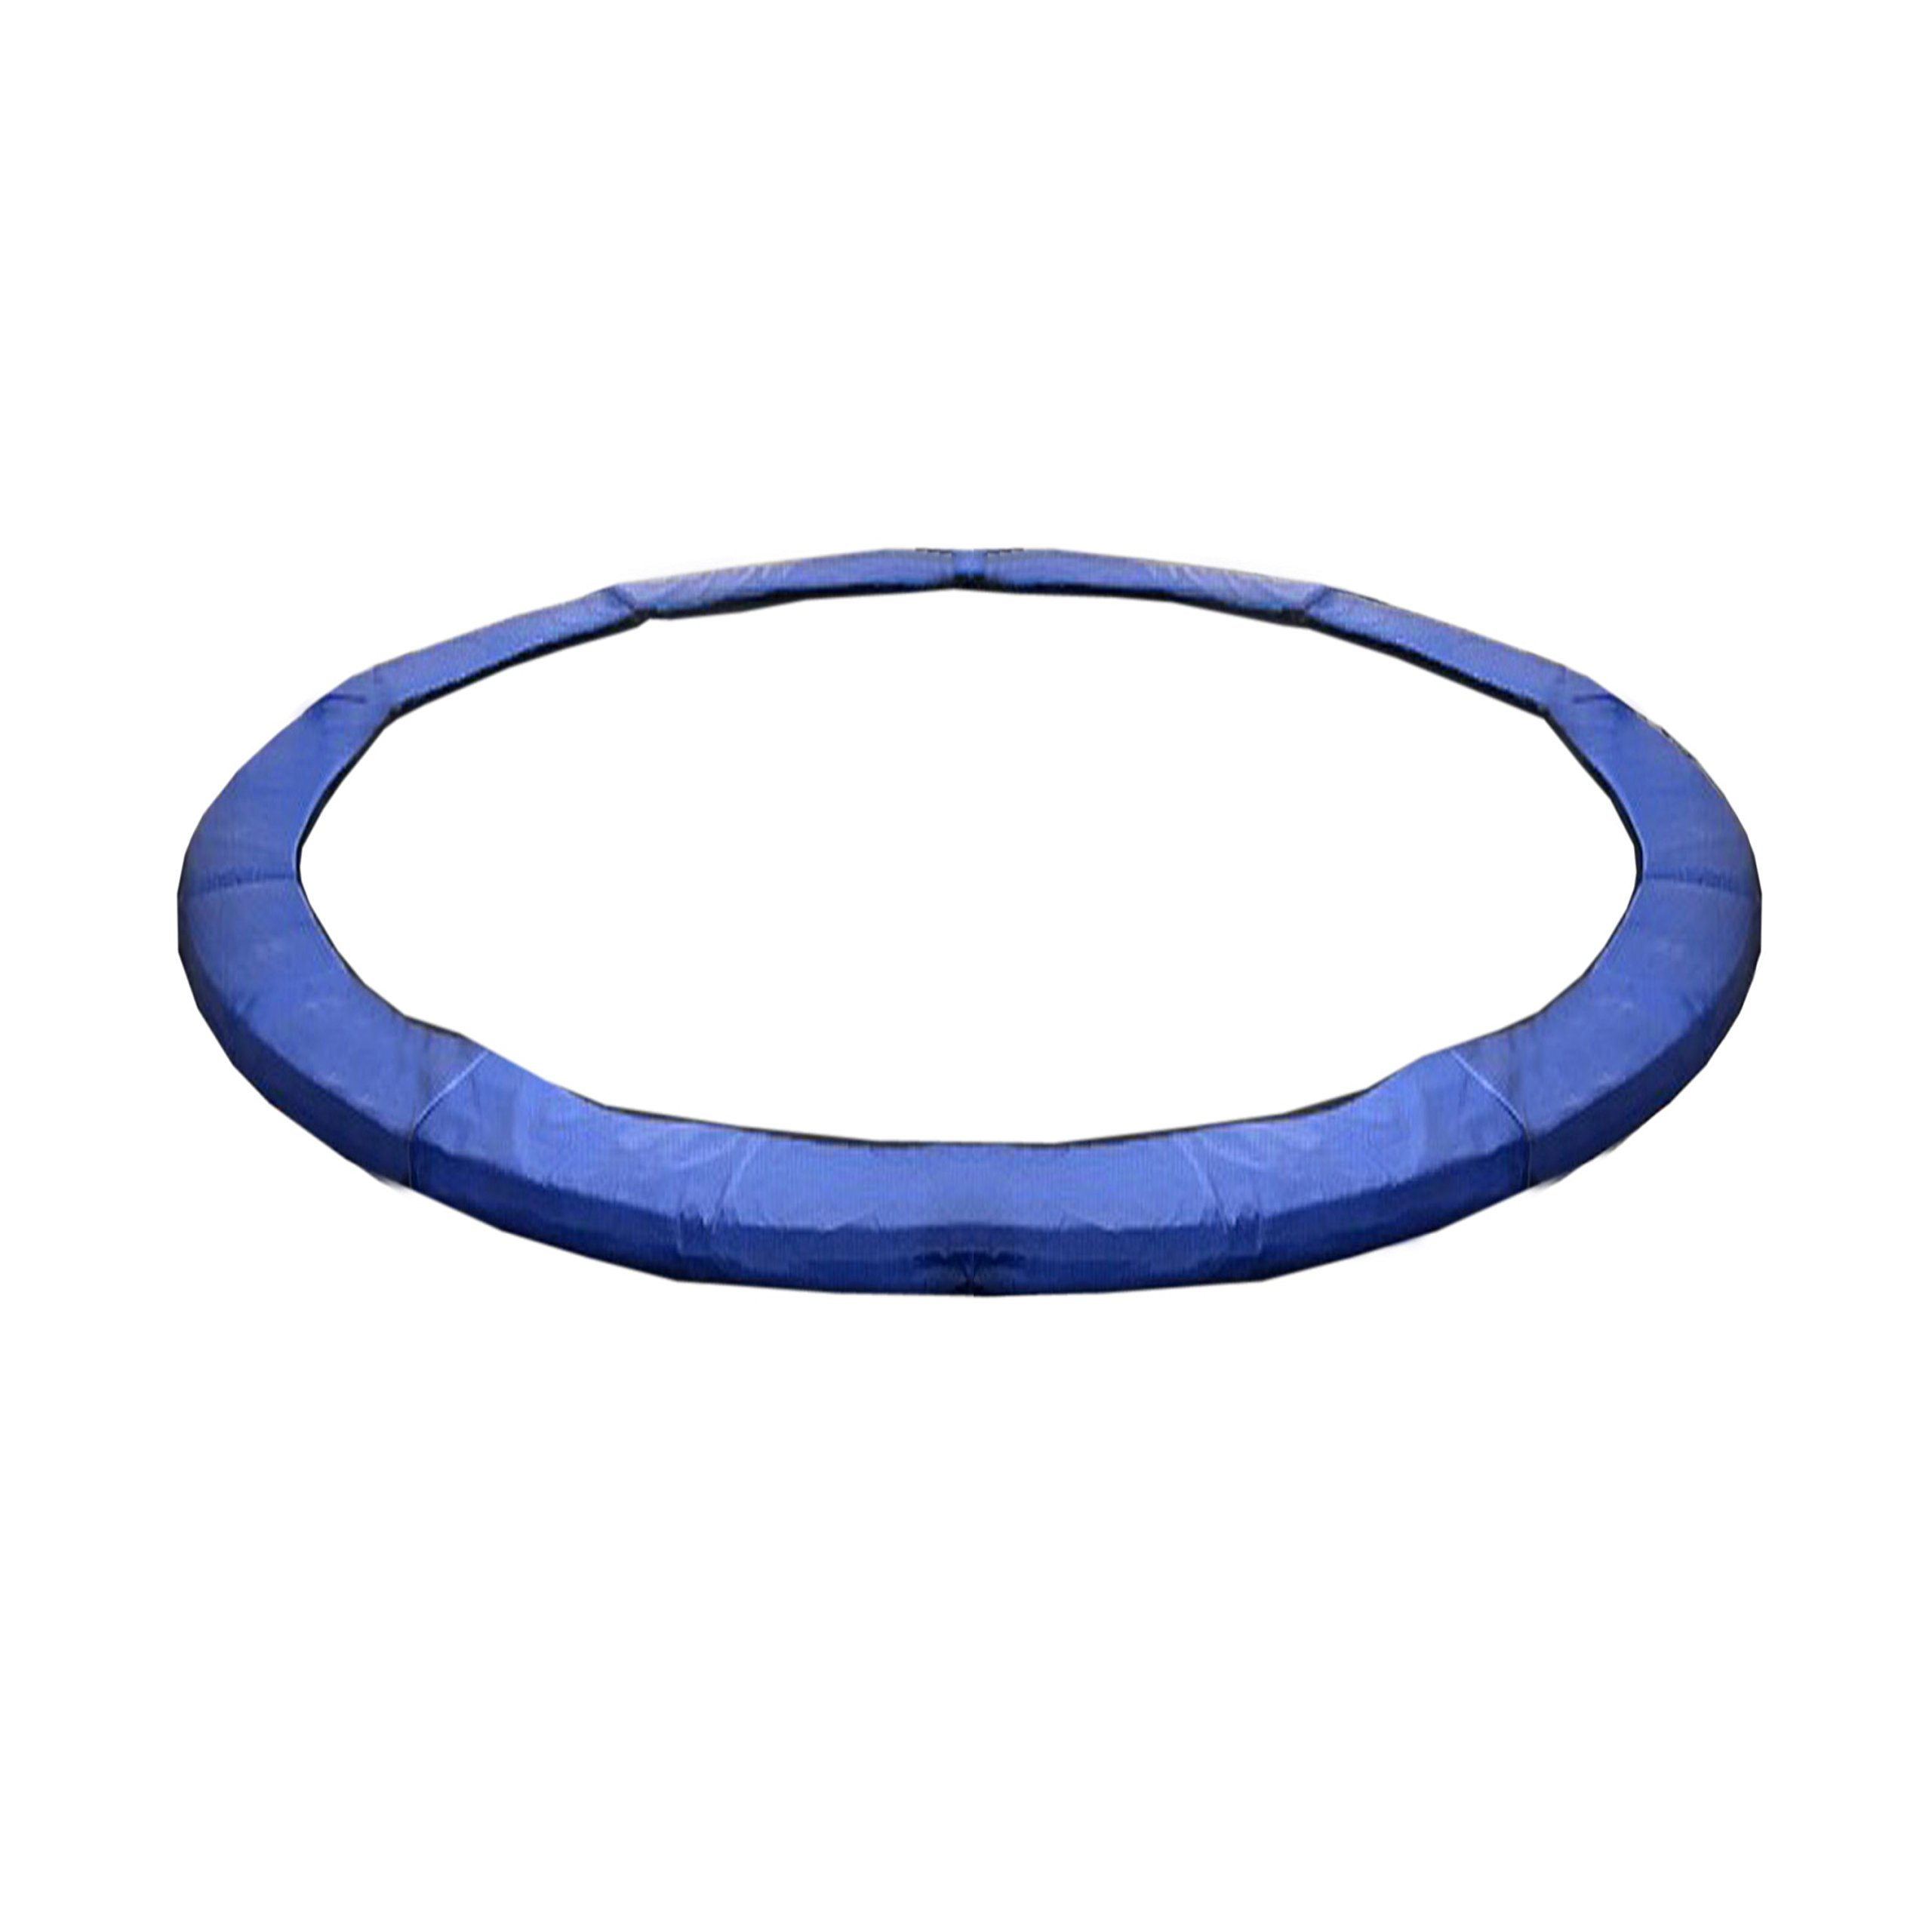 ALEKO TRP16SP Round Trampoline Safety Pad for 16 Foot Trampolines EPE Foam Safety Pad, Blue Color